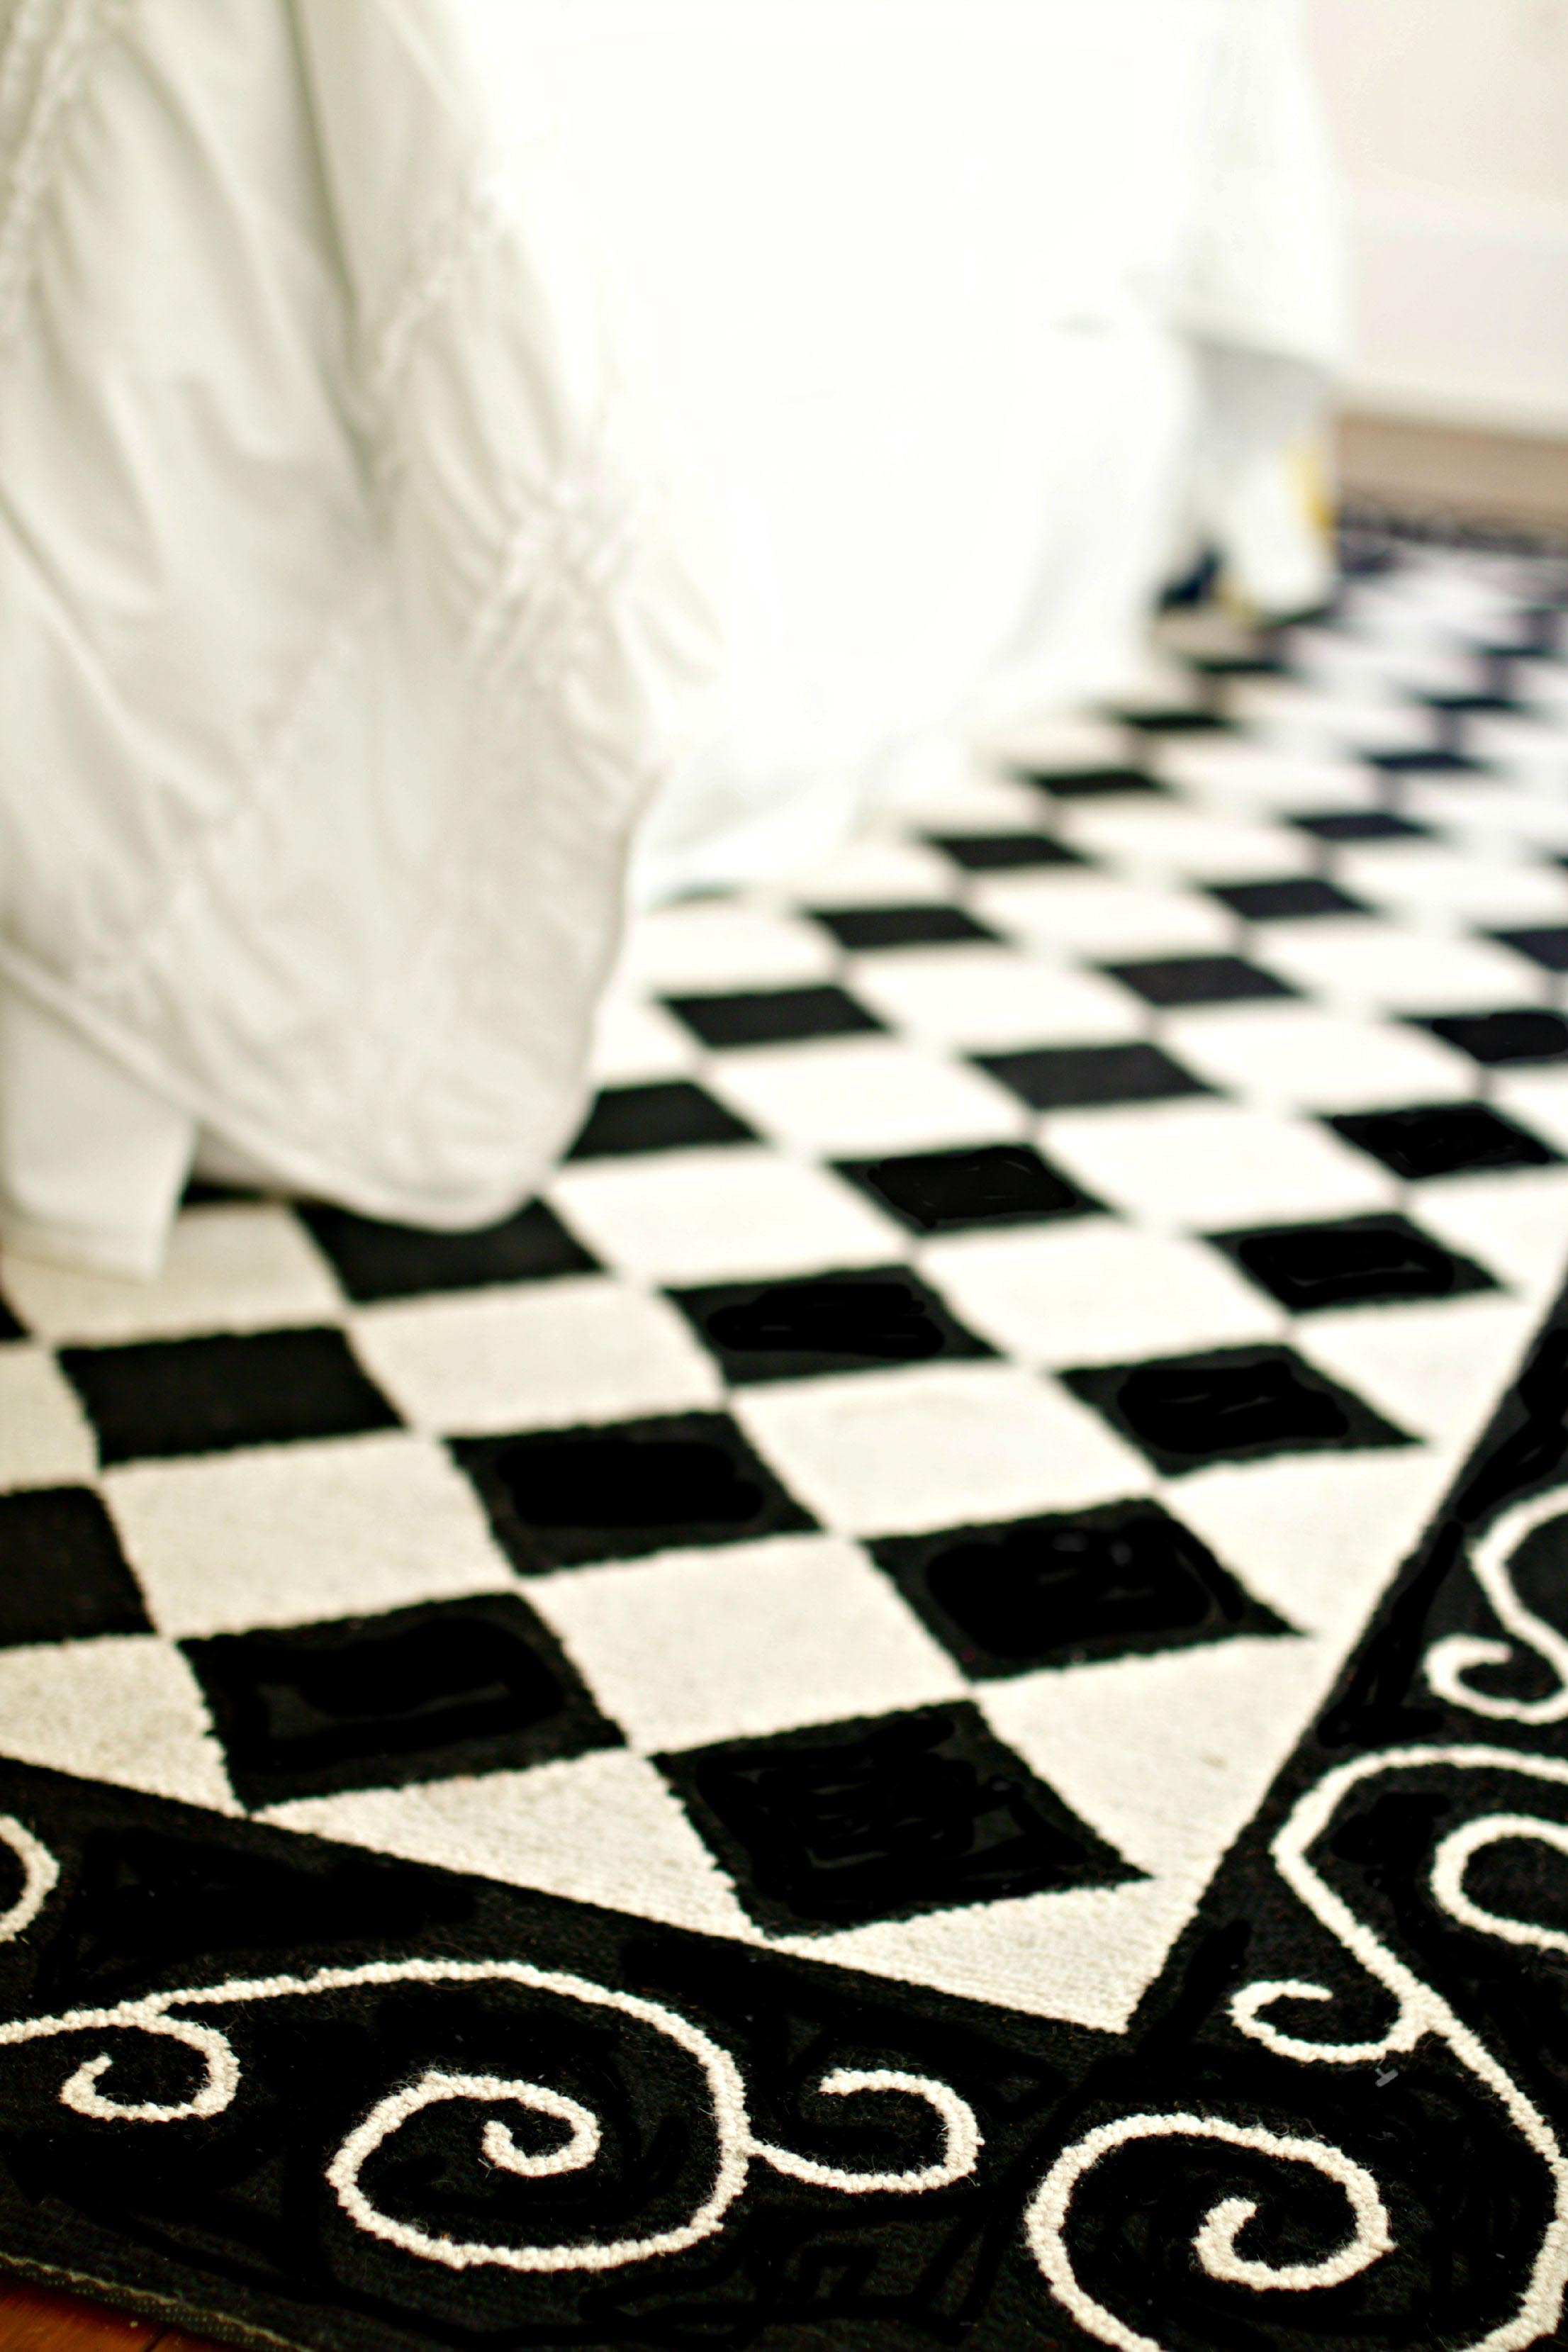 Checkered Carpet Black and White